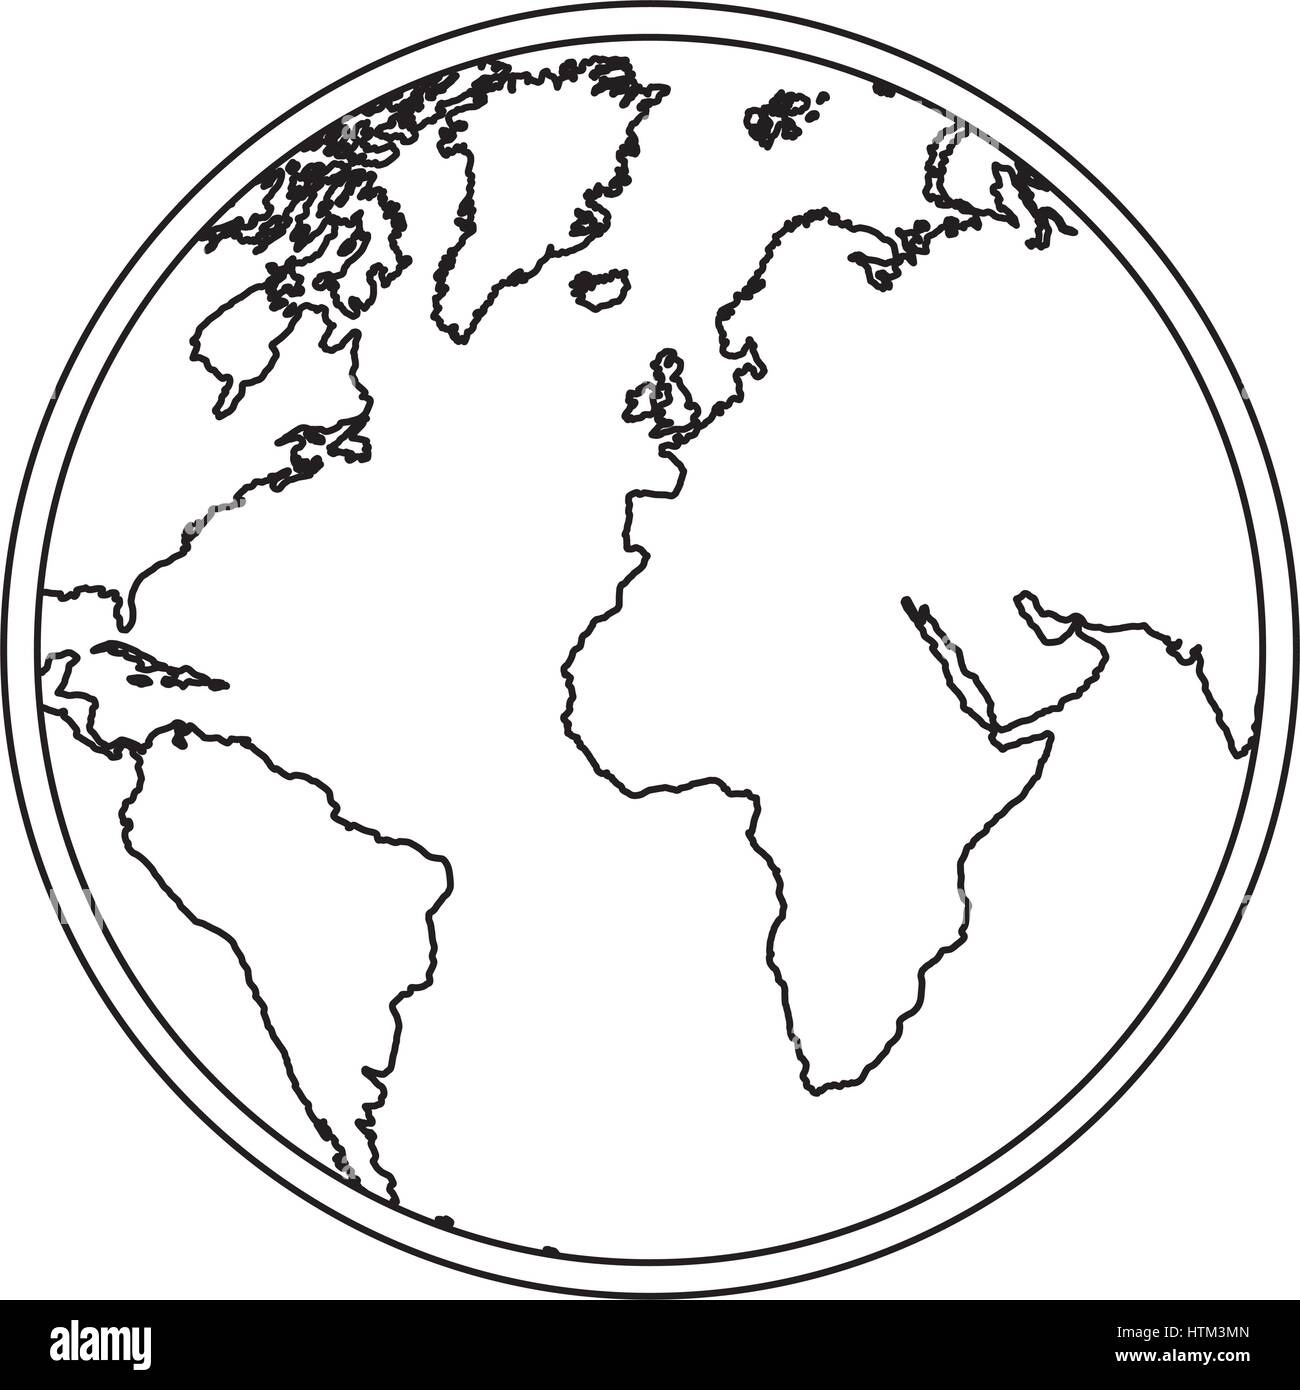 Silhouette earth world map with continents icon stock vector art silhouette earth world map with continents icon gumiabroncs